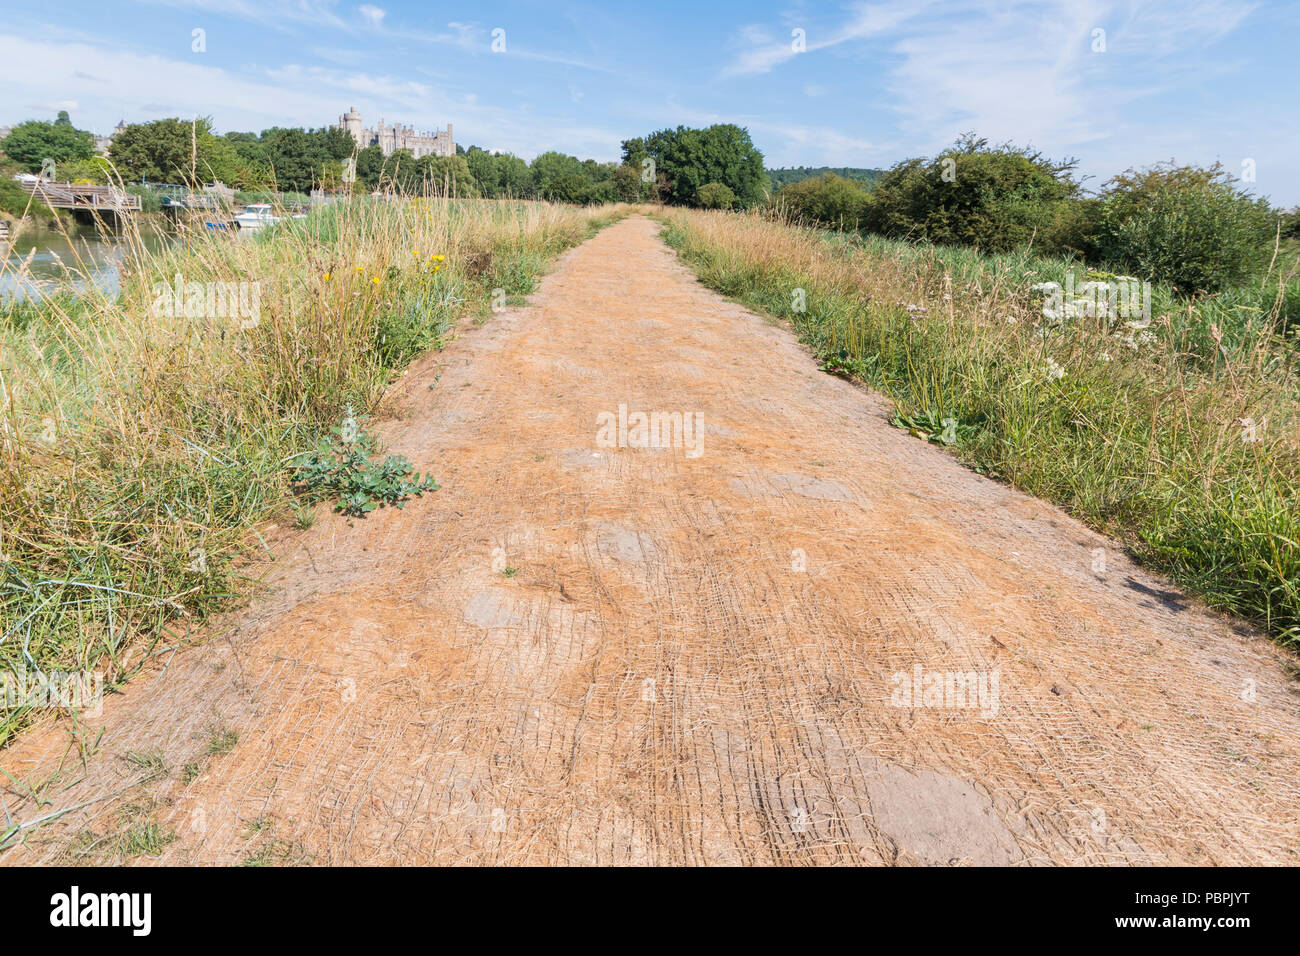 Ground stabilisation mesh on a path that is often muddy, but with a lack of rain for a while, the mud has dried. - Stock Image